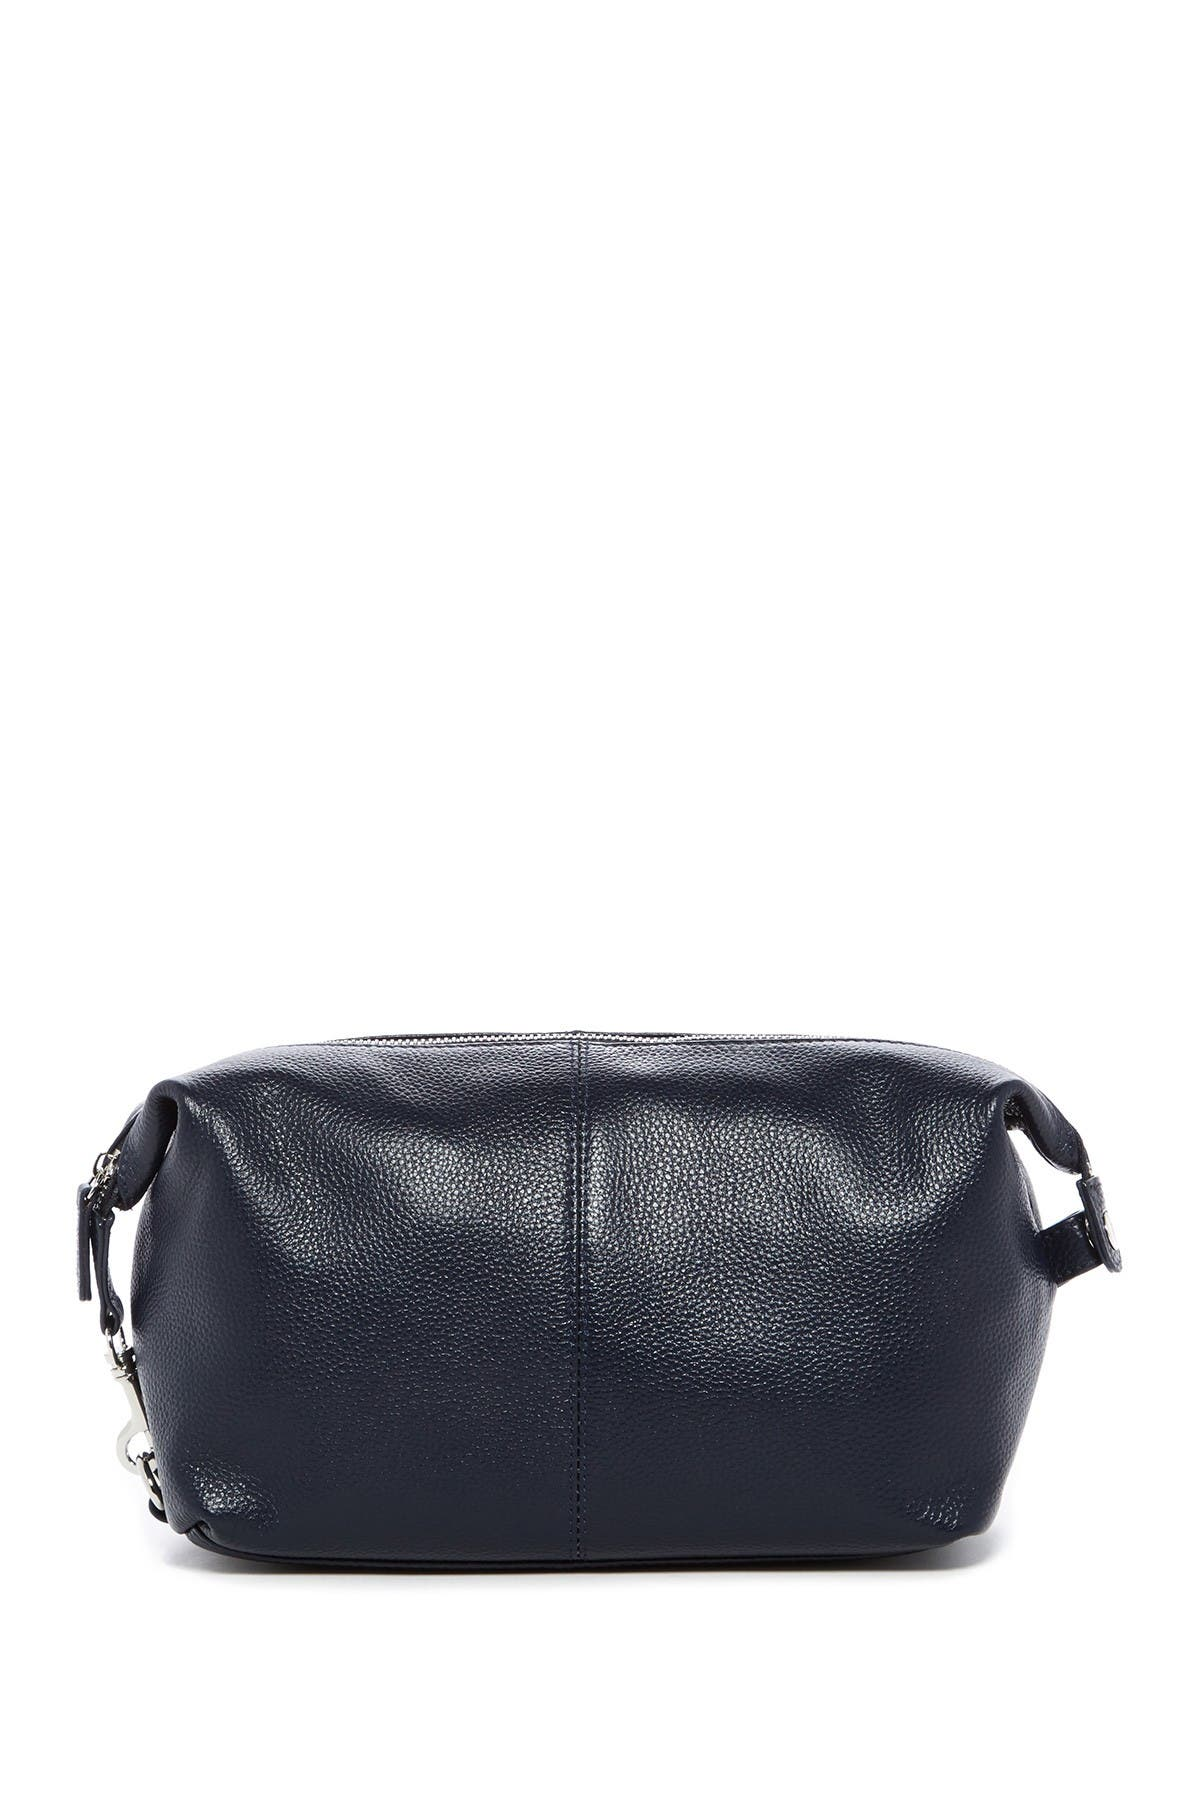 Image of Brouk & Co Stanford Genuine Leather Toiletry Bag